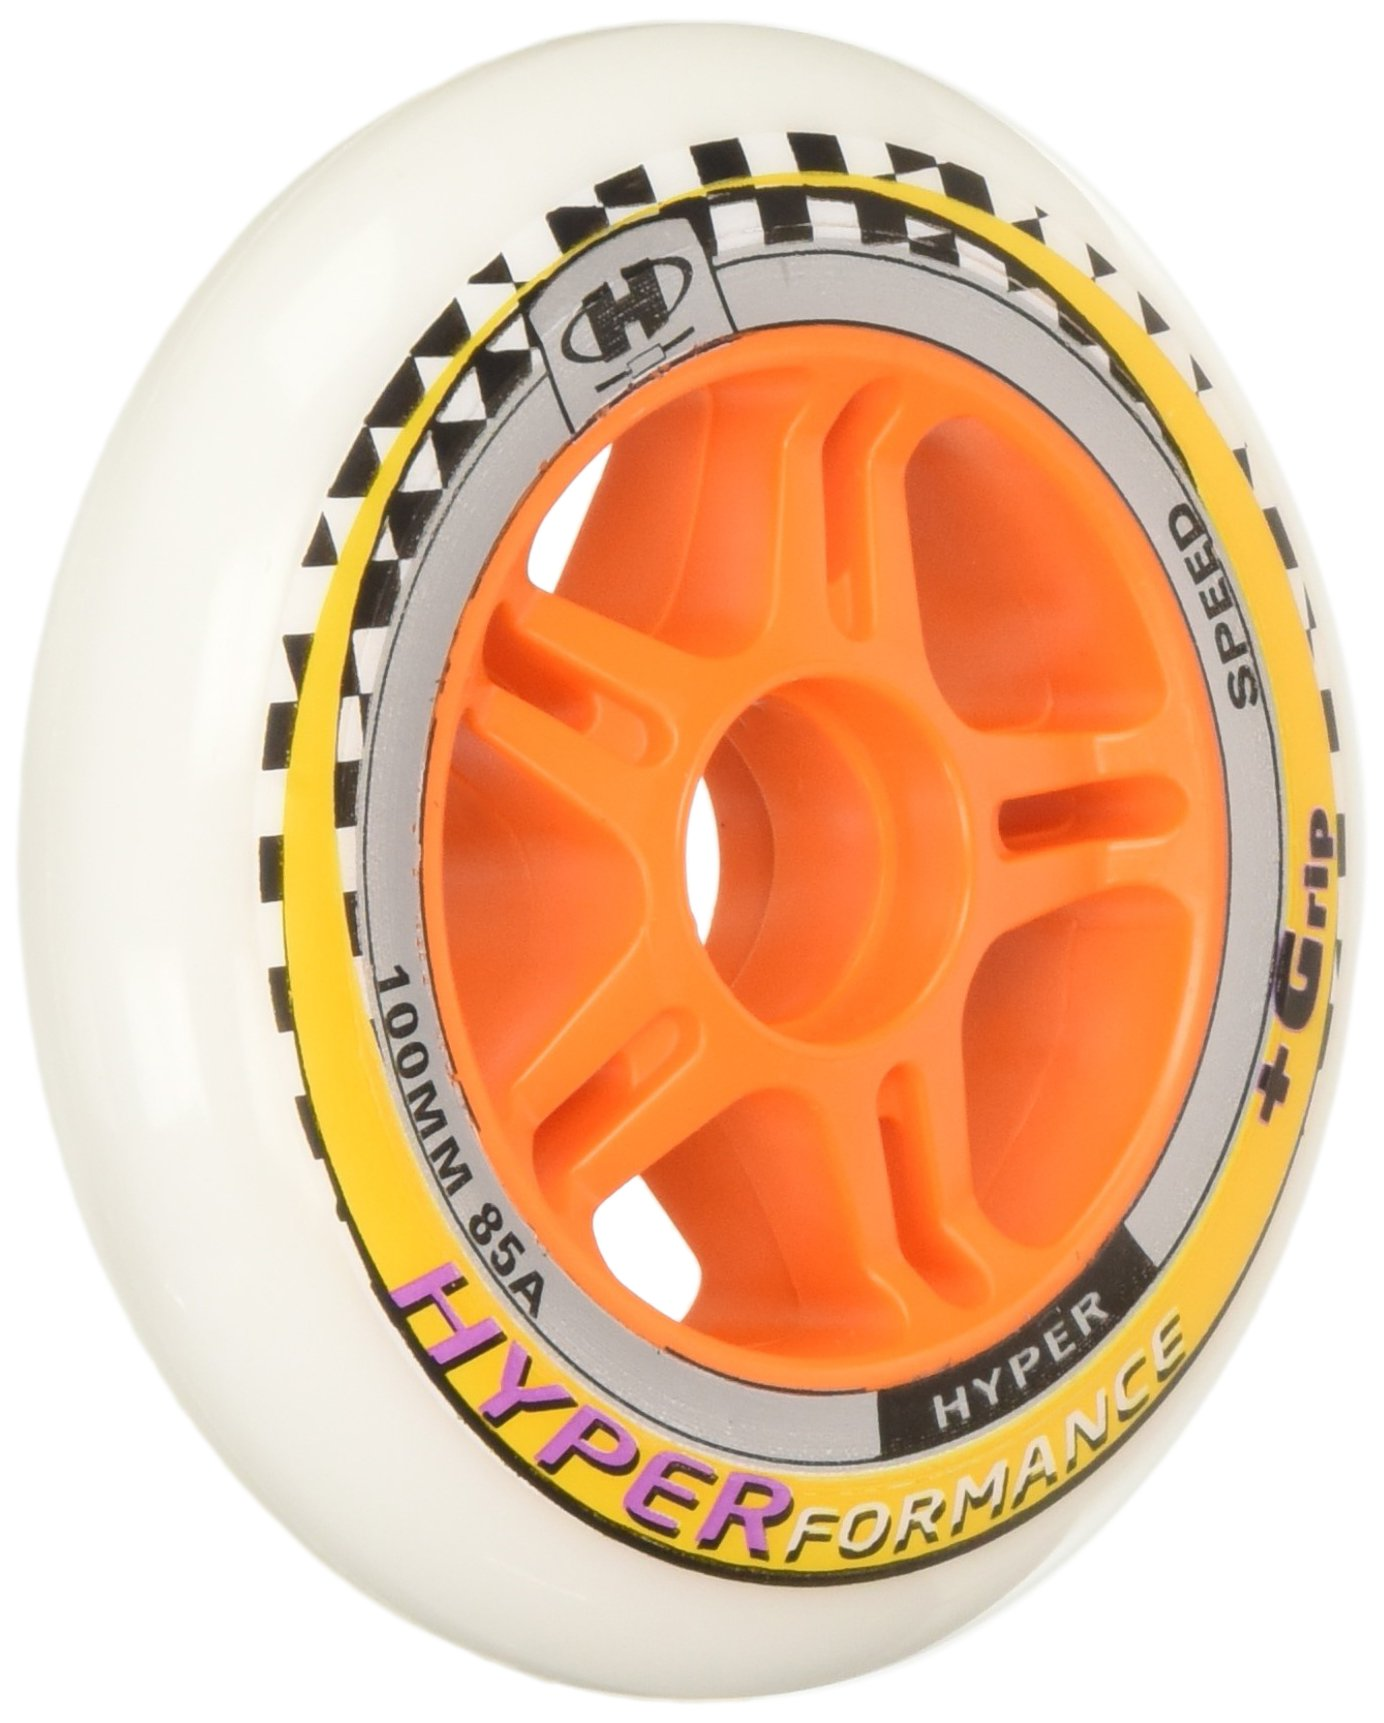 HYPER HYPERFORMANCE 84MM/85A (8 WHEELS per pack) - inline skate wheels for speed skating by Hyper Wheels